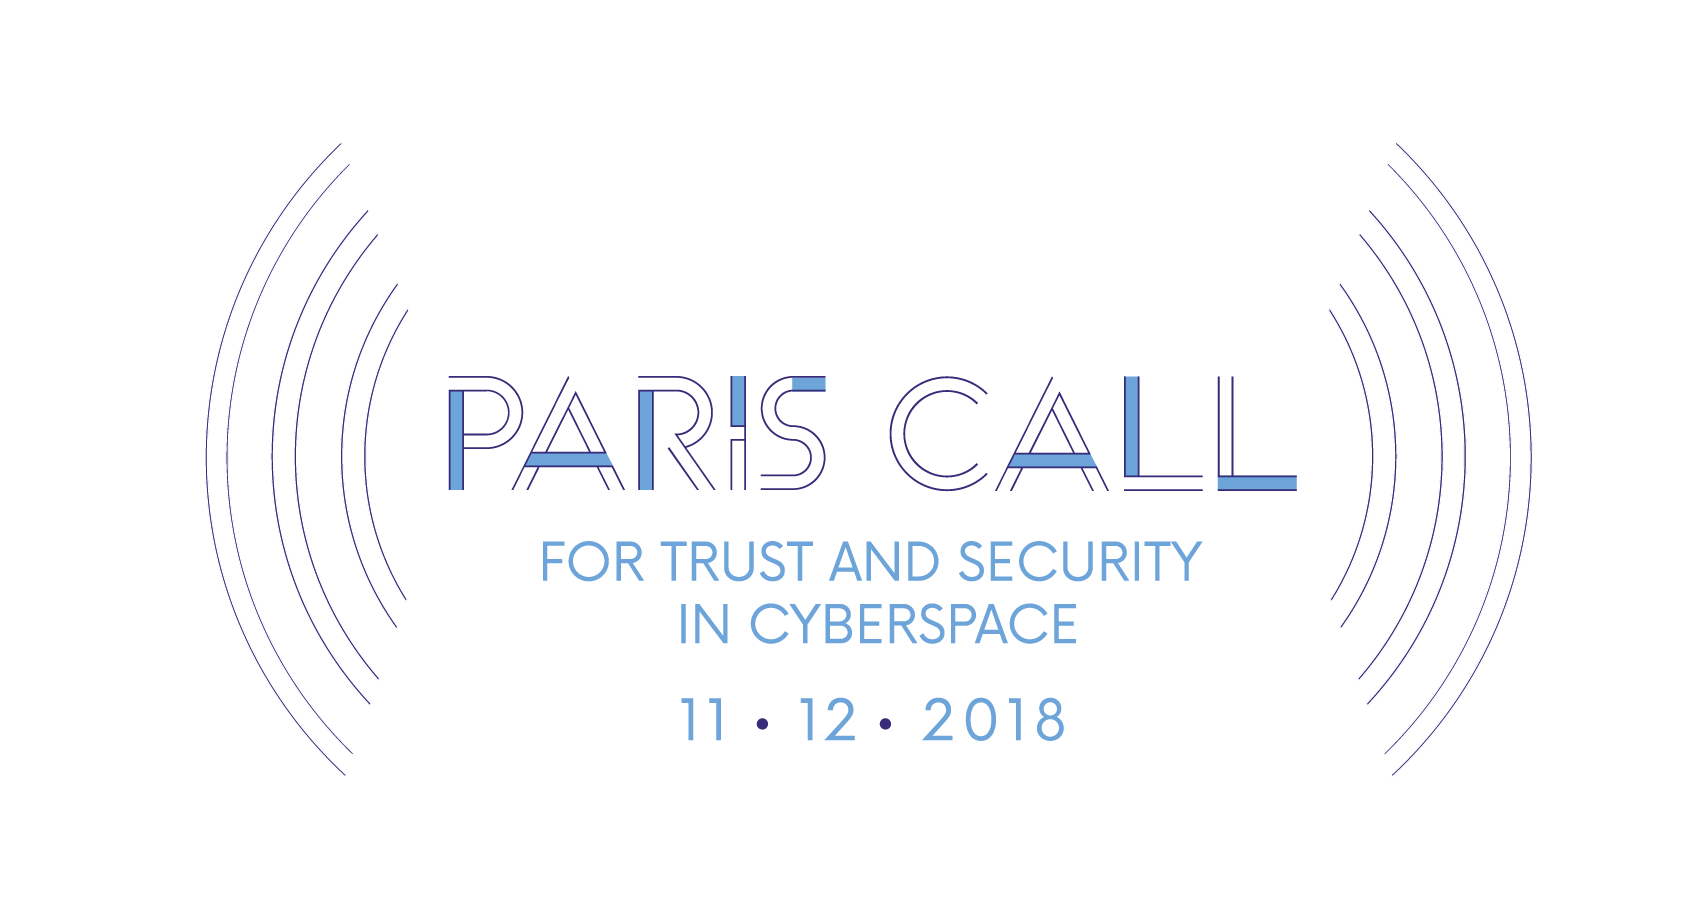 Tosibox announces support for Paris Call for Trust and Security in Cyberspace